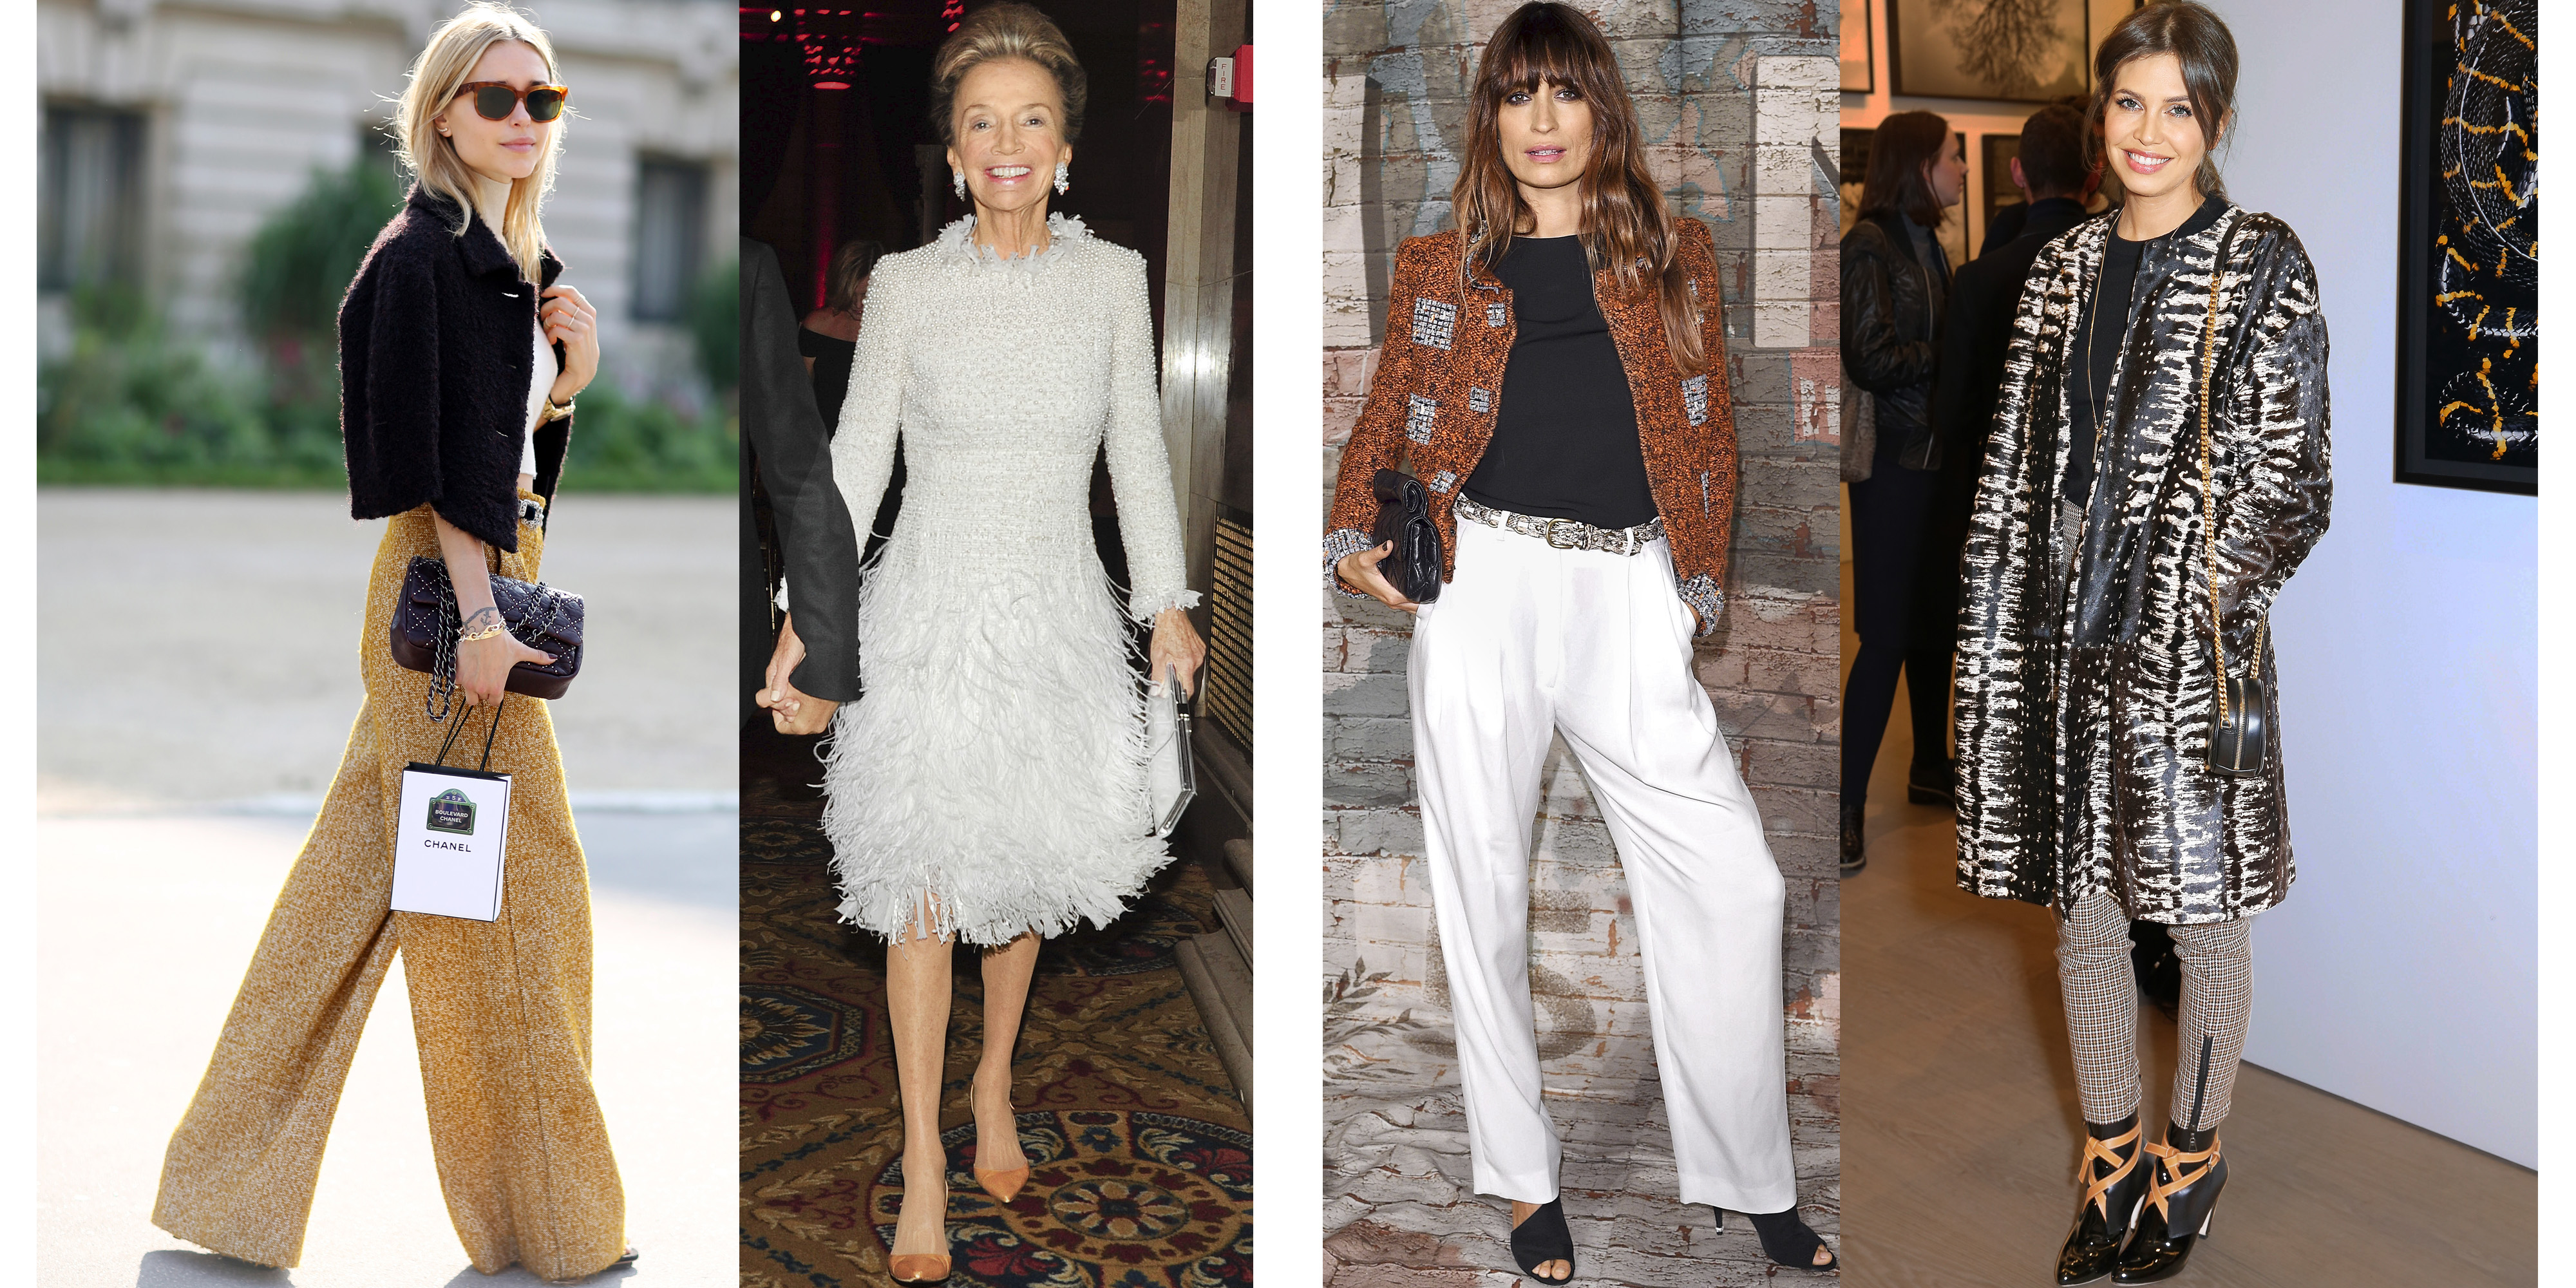 How to Dress Your Age - What Not To Wear As You Get Older